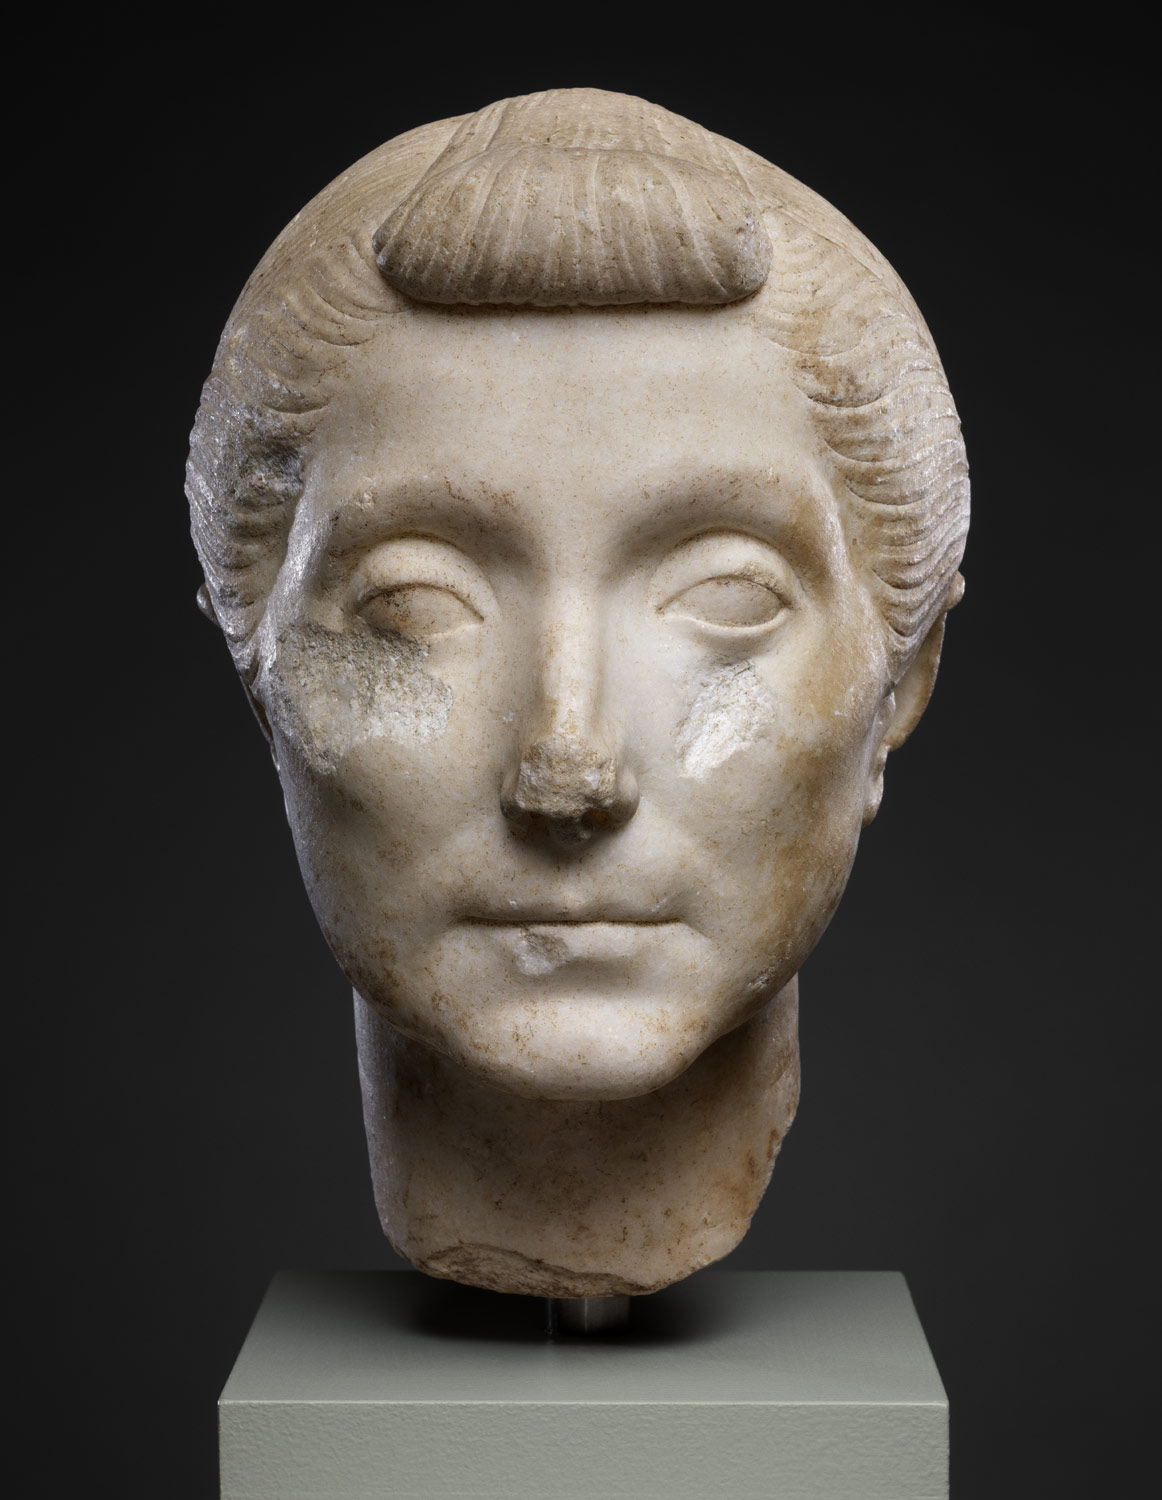 Marble head of an elderly woman